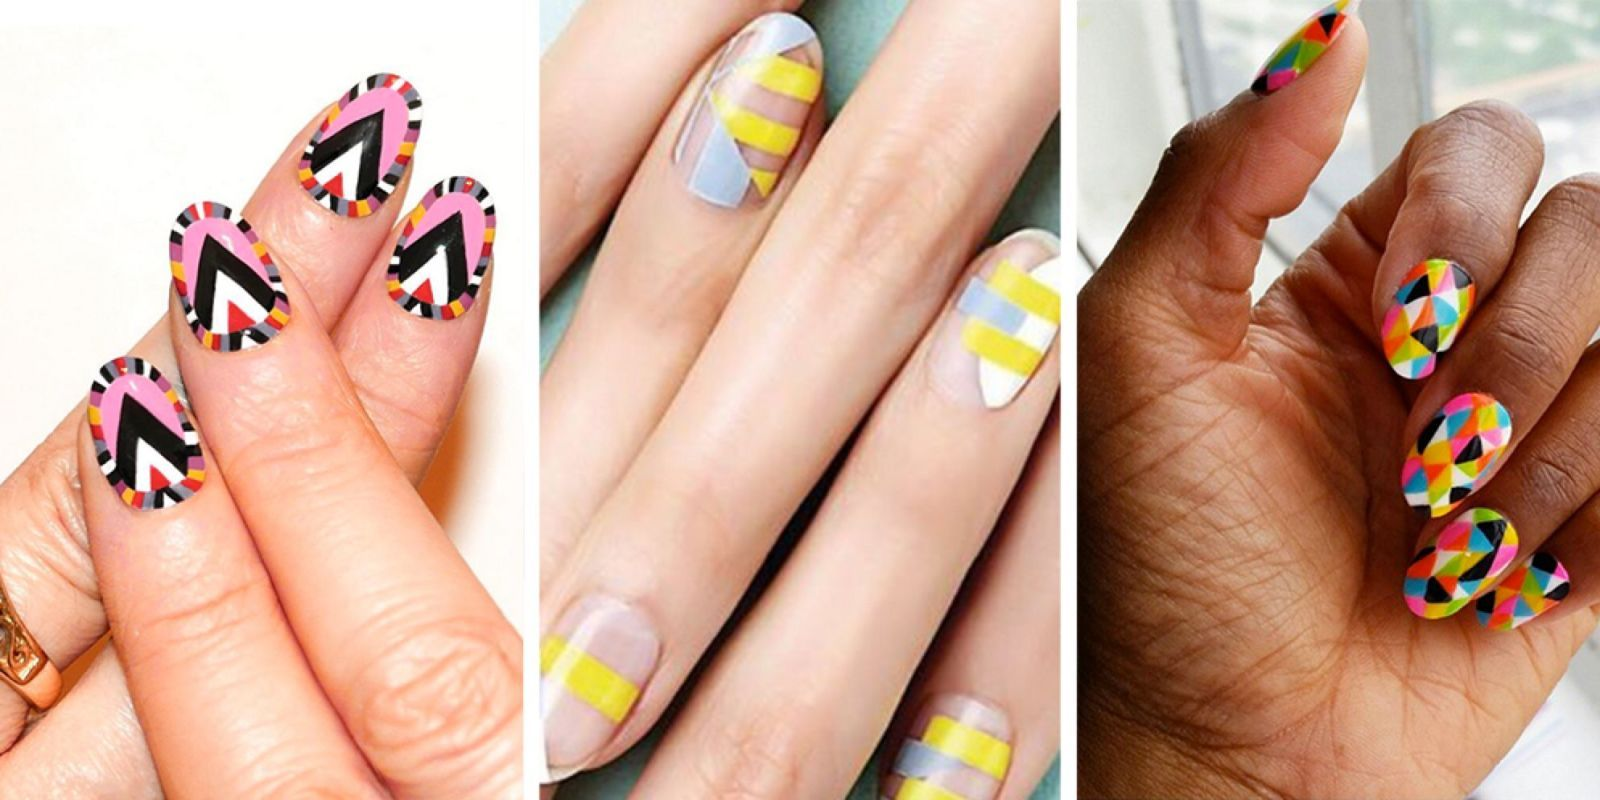 The New Polish Trend Is Like Jelly Shoes for Your Nails | Nail ...